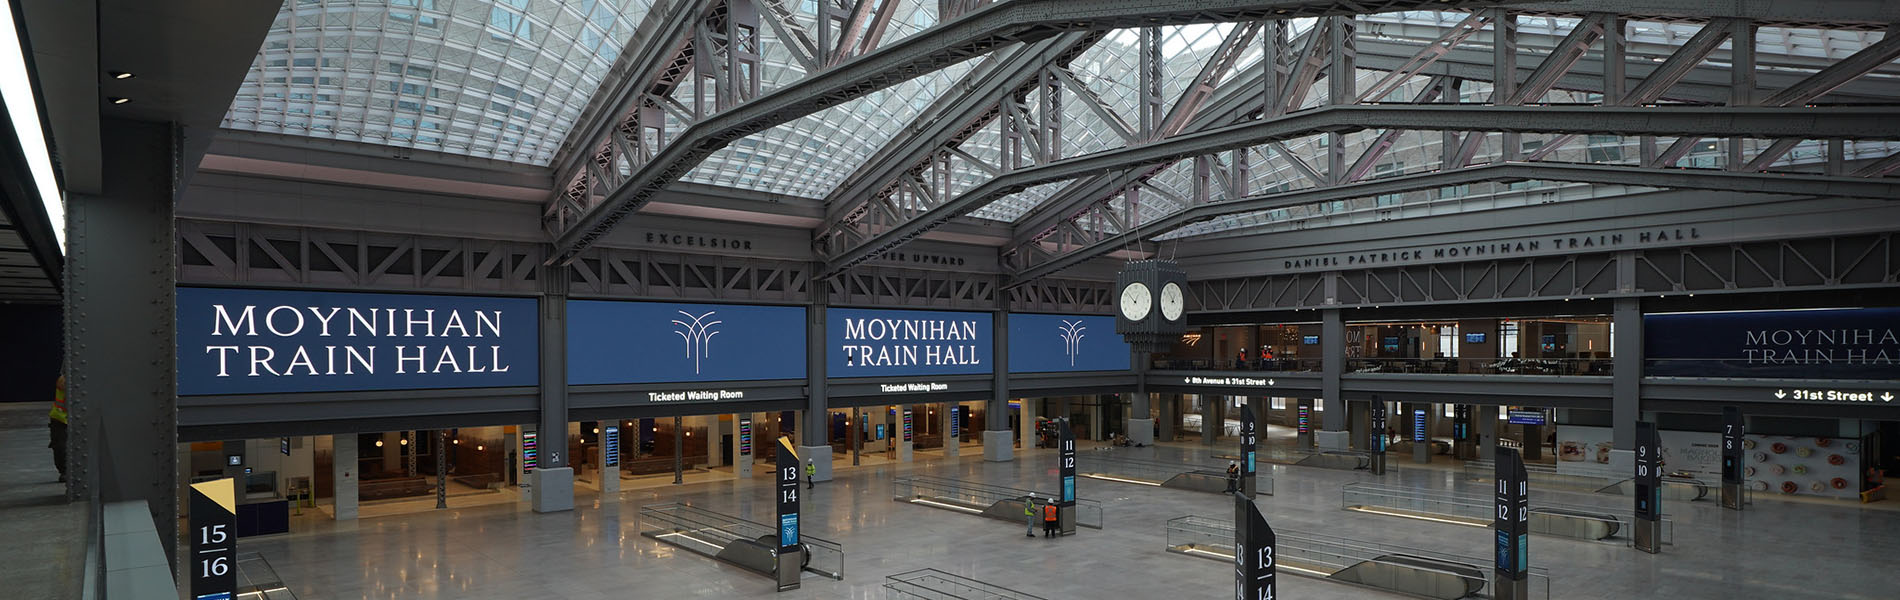 Interview view of soaring trusses and glass roof at Moynihan Train Hall